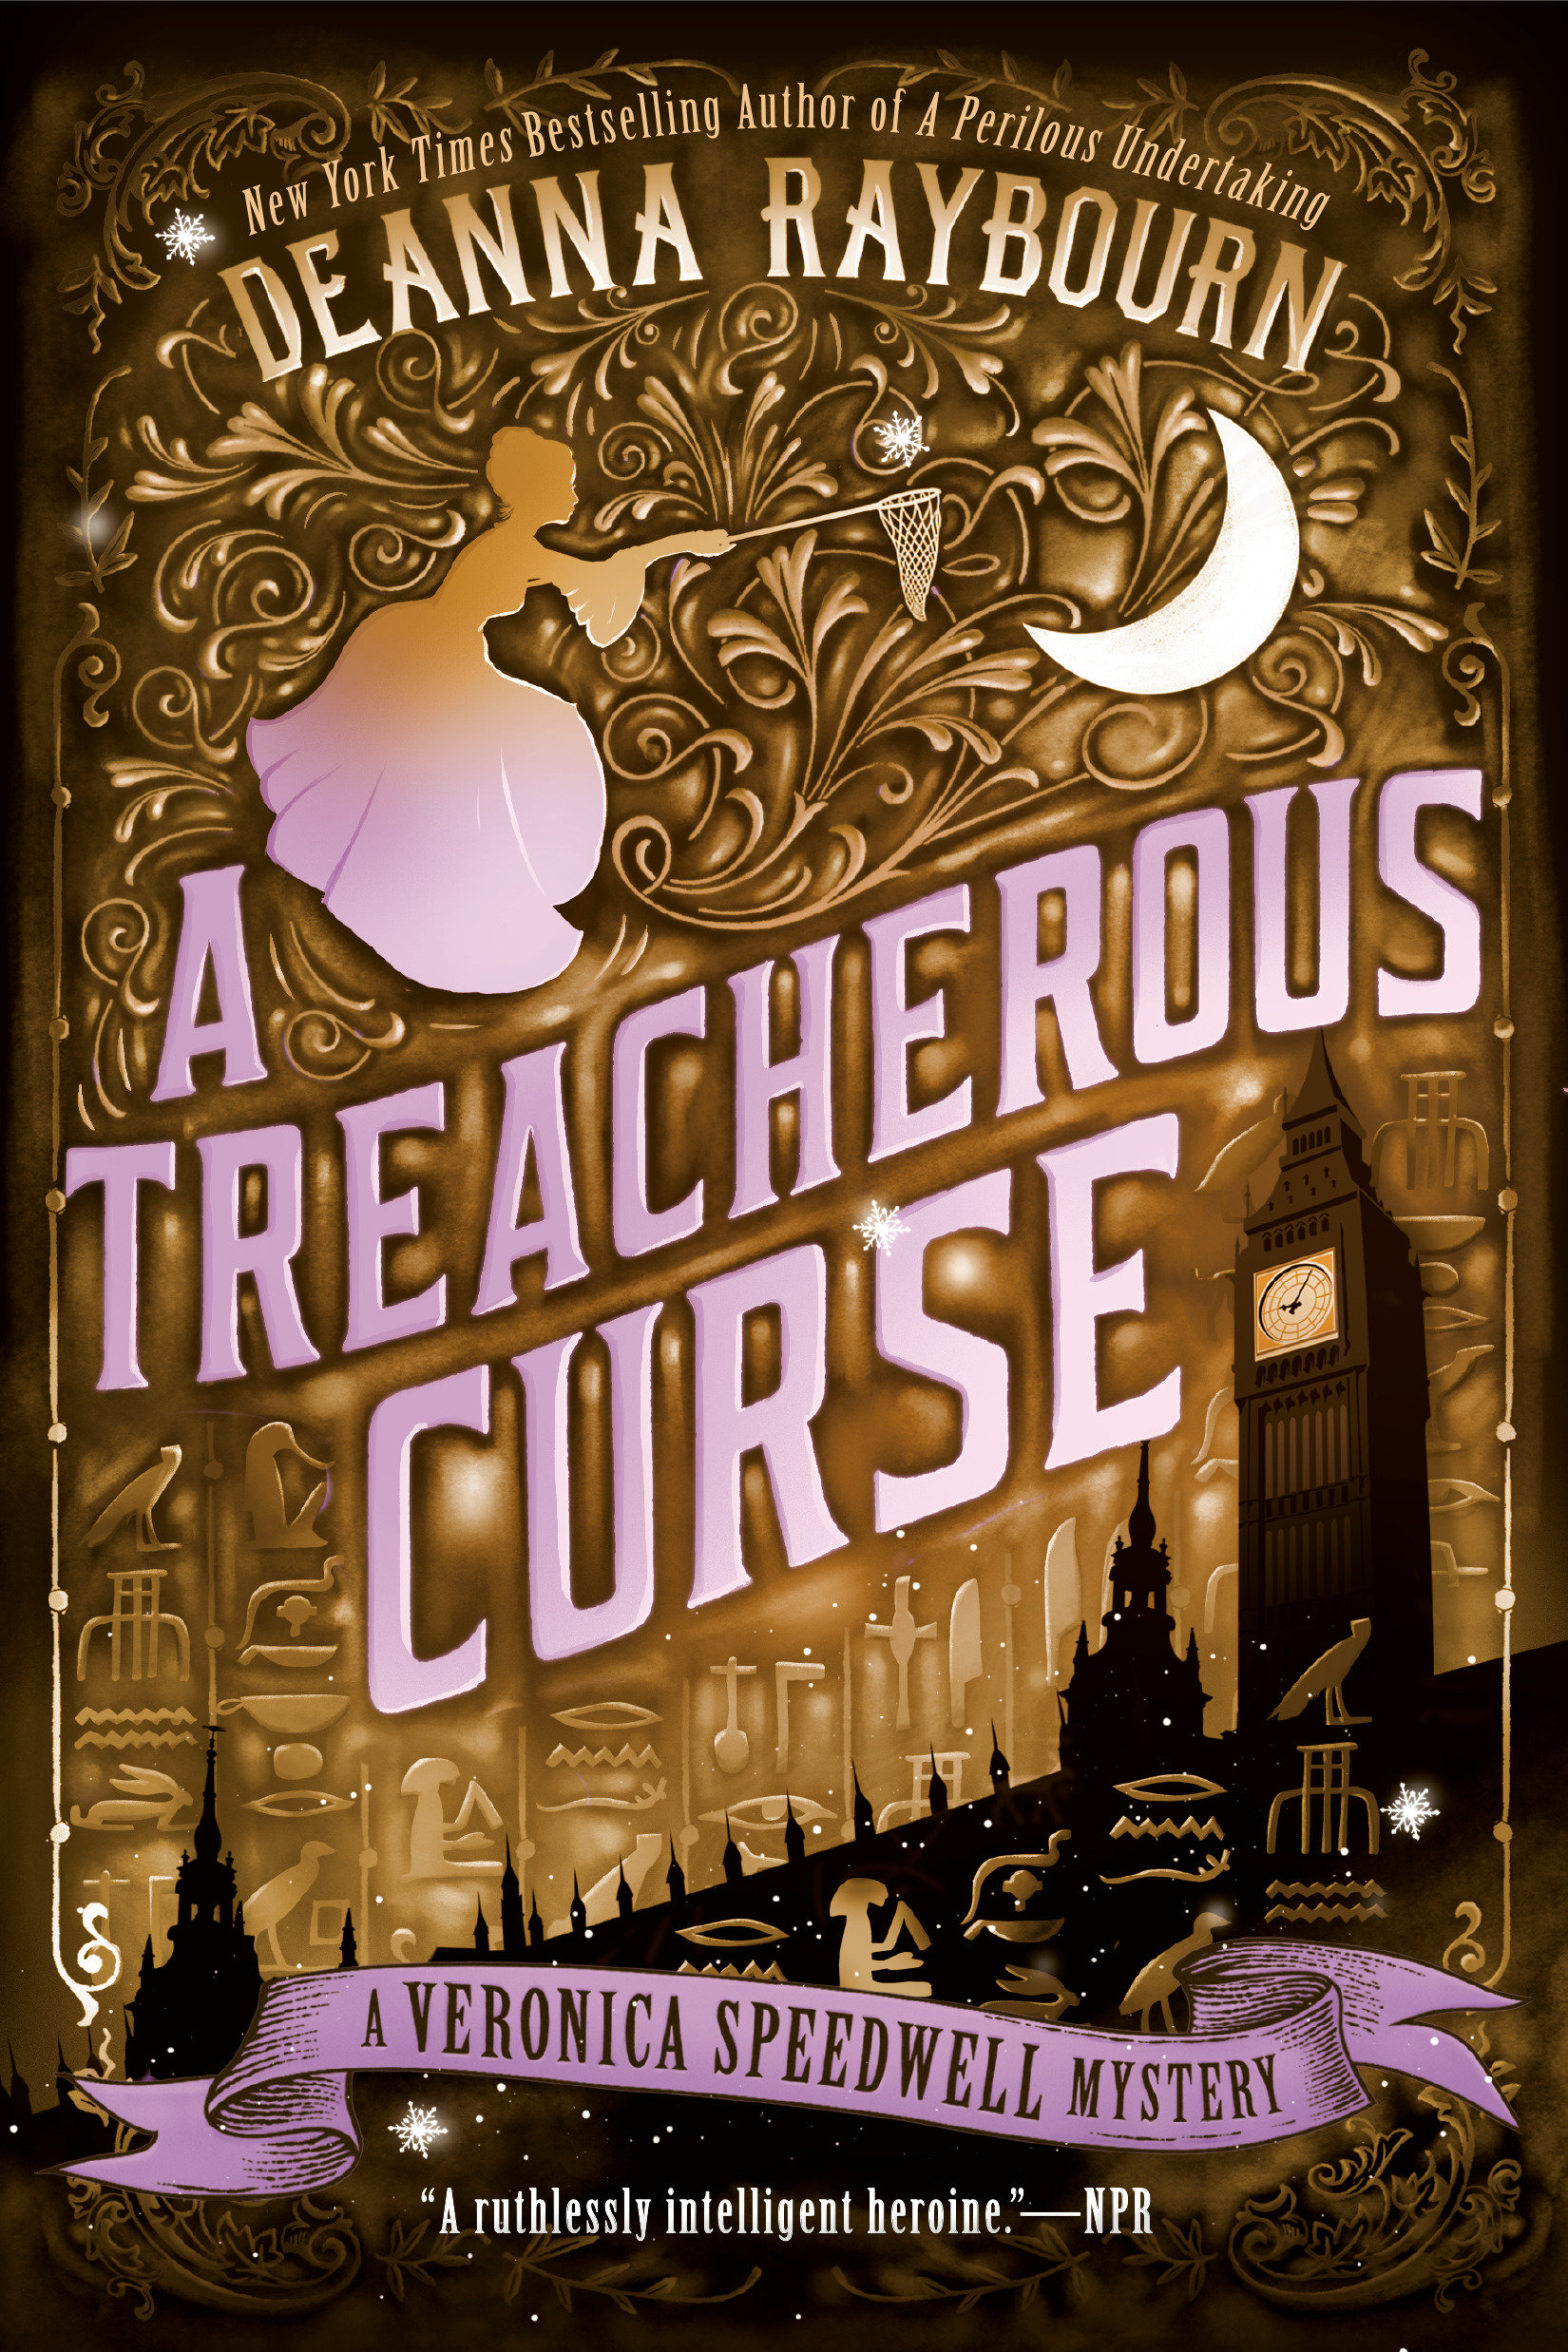 A treacherous curse a Veronica Speedwell mystery cover image